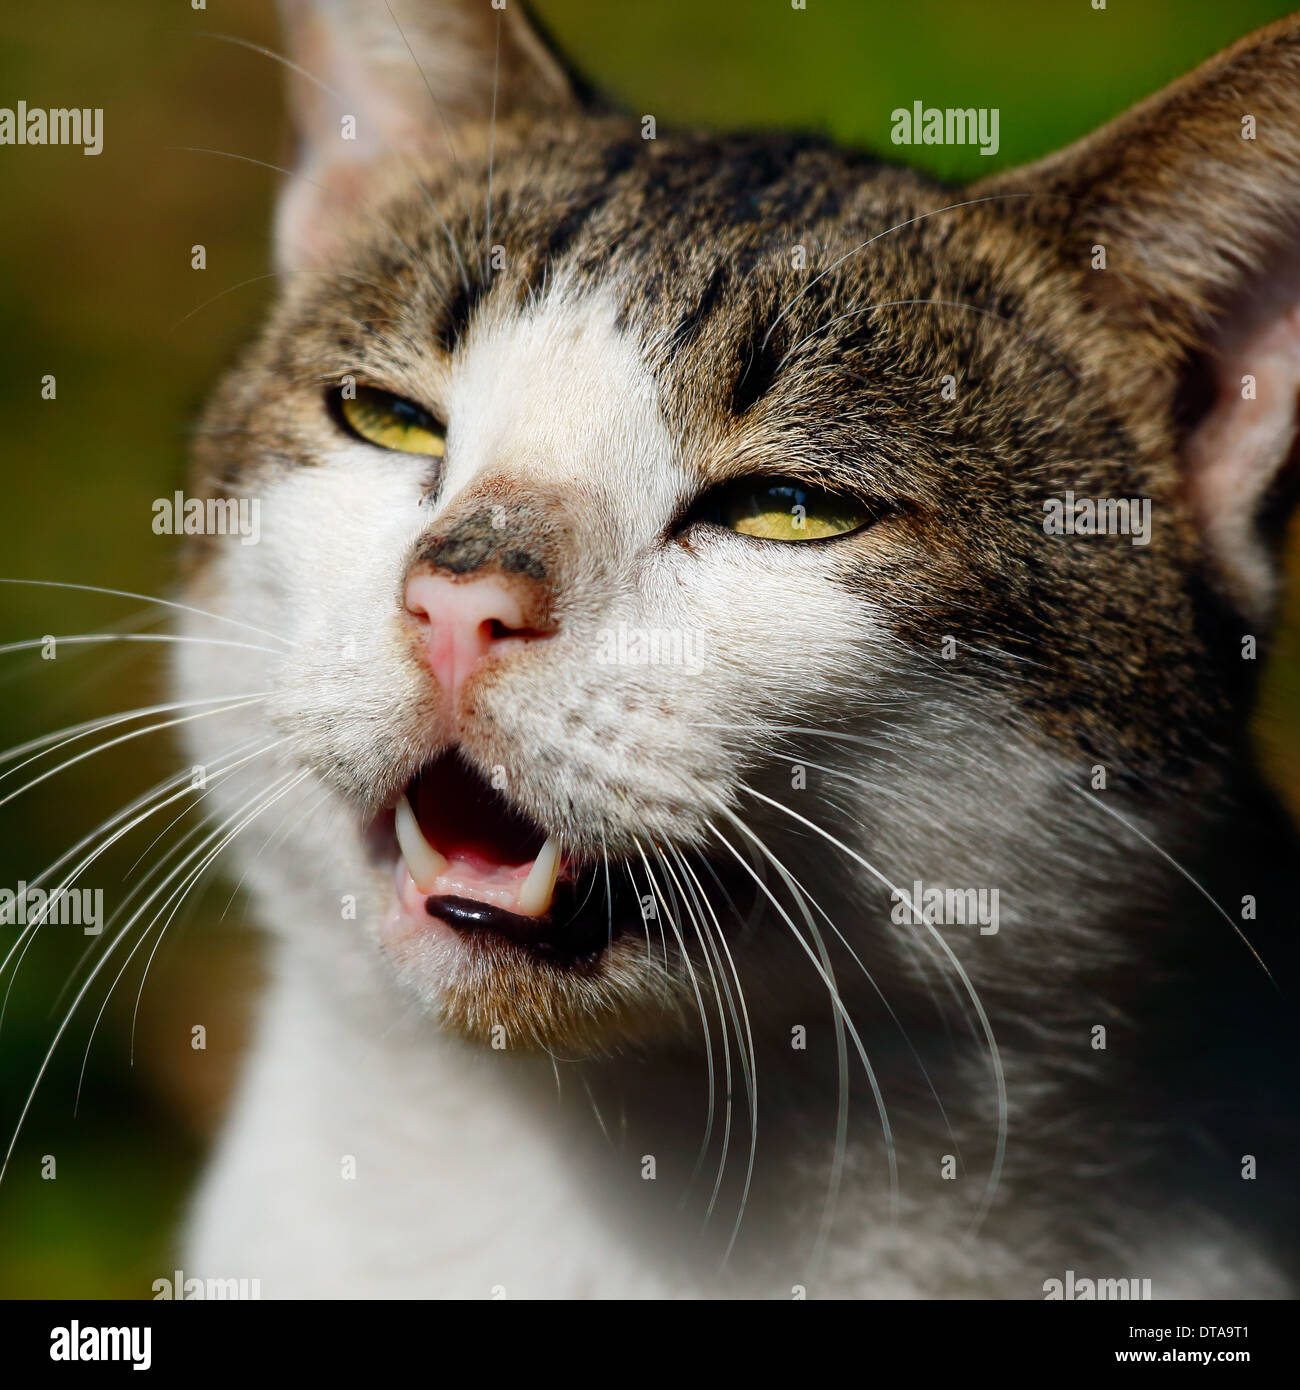 Closeup view of a cute cat face Stock Royalty Free Image